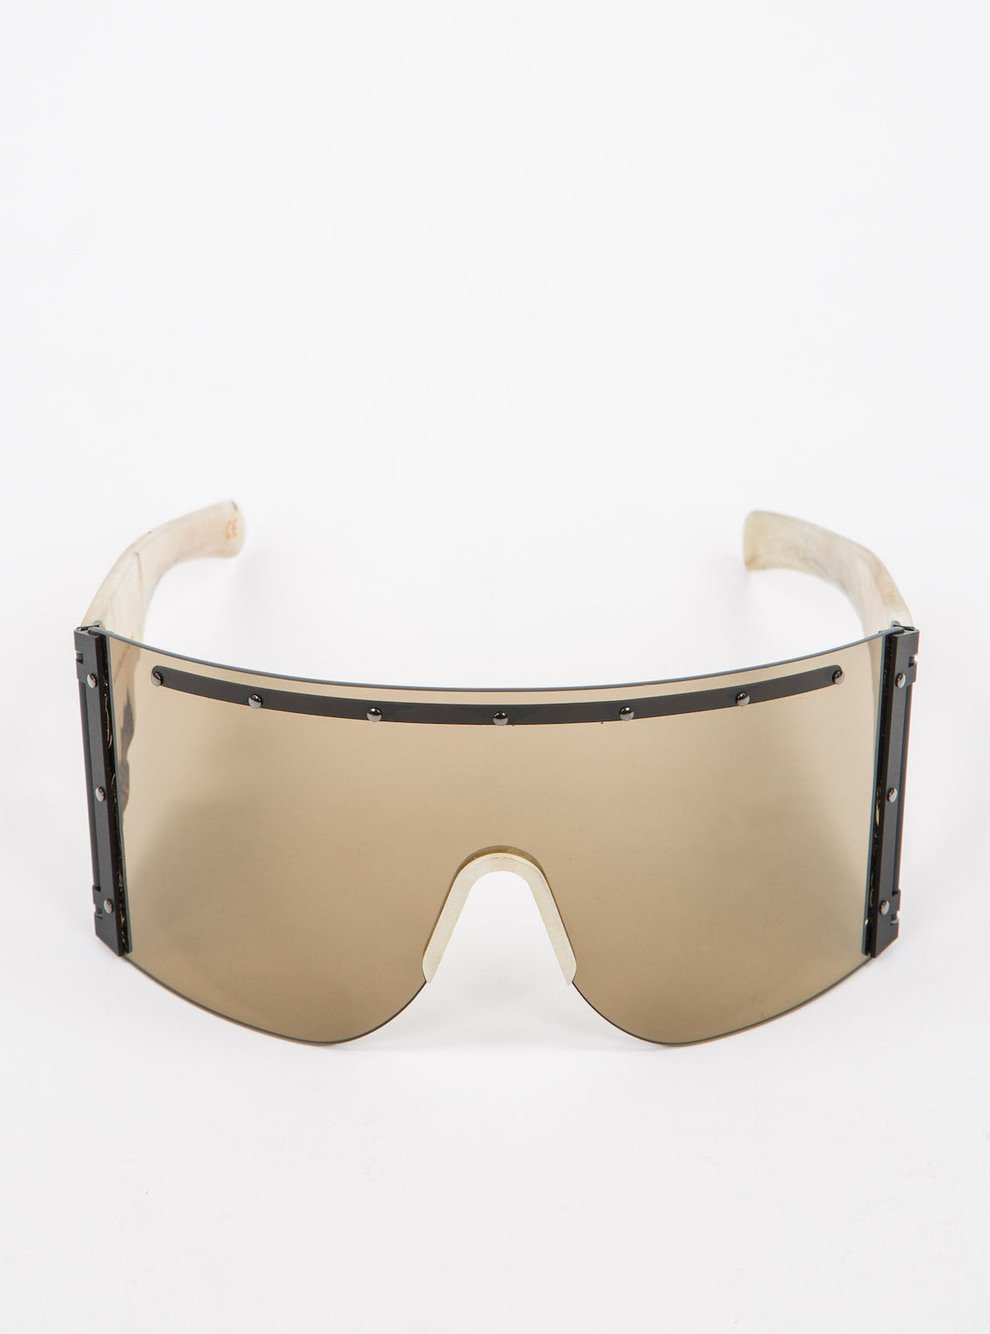 RICK OWENS - HIGH MASK SUNGLASSES